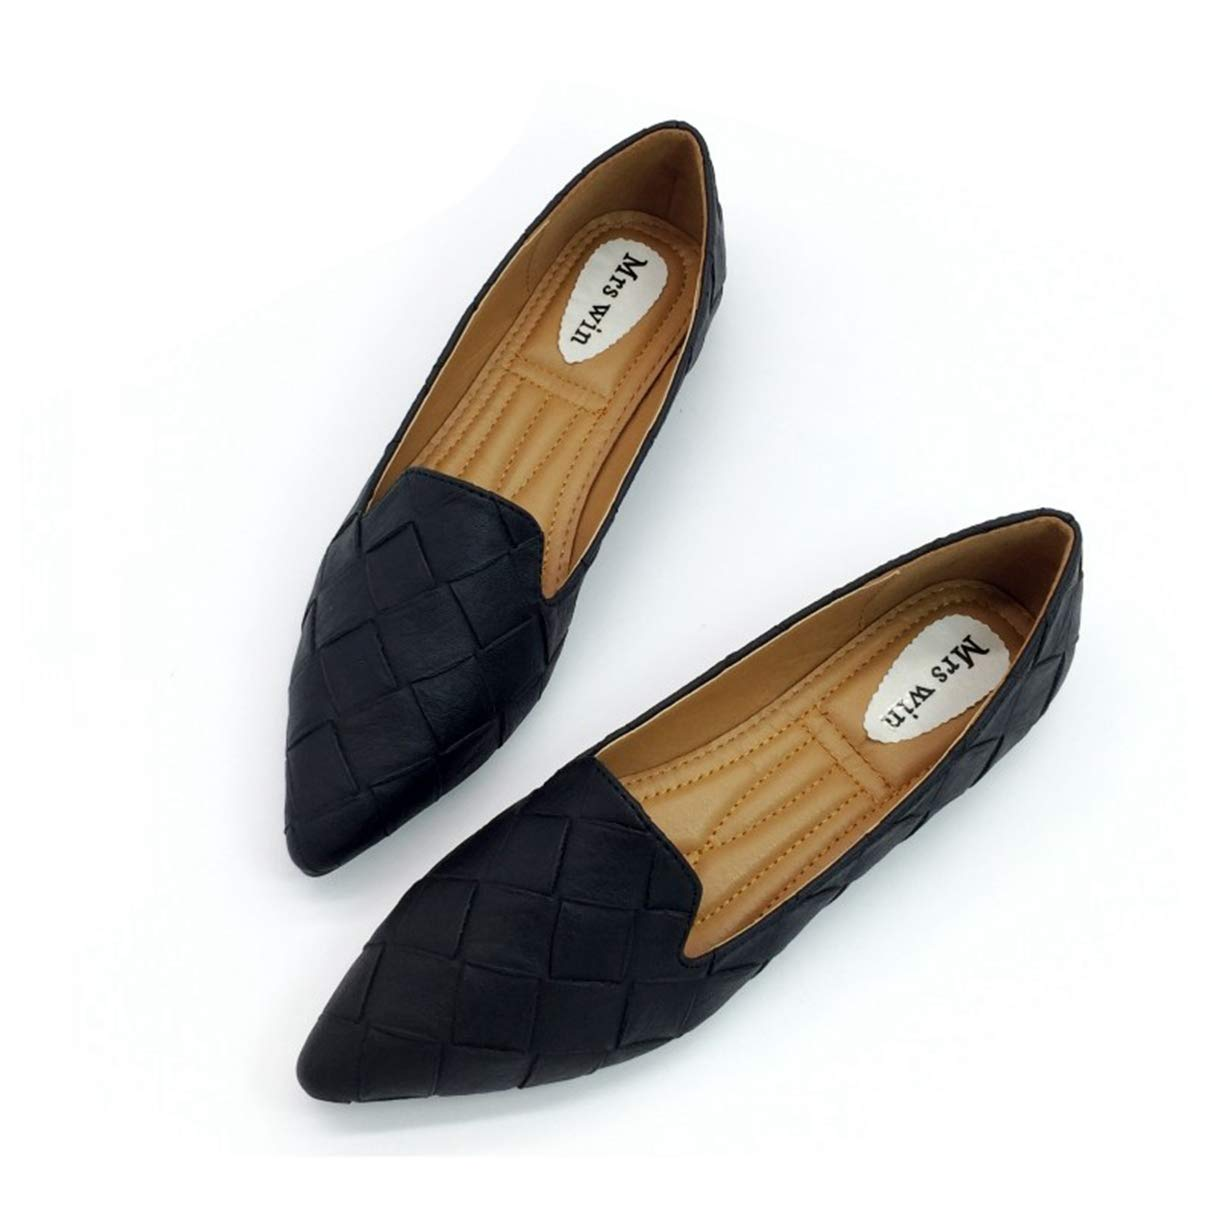 Owen Moll Women Flats, Vintage Autumn Loafers Pointed Toe Slip On Shoes for Woman